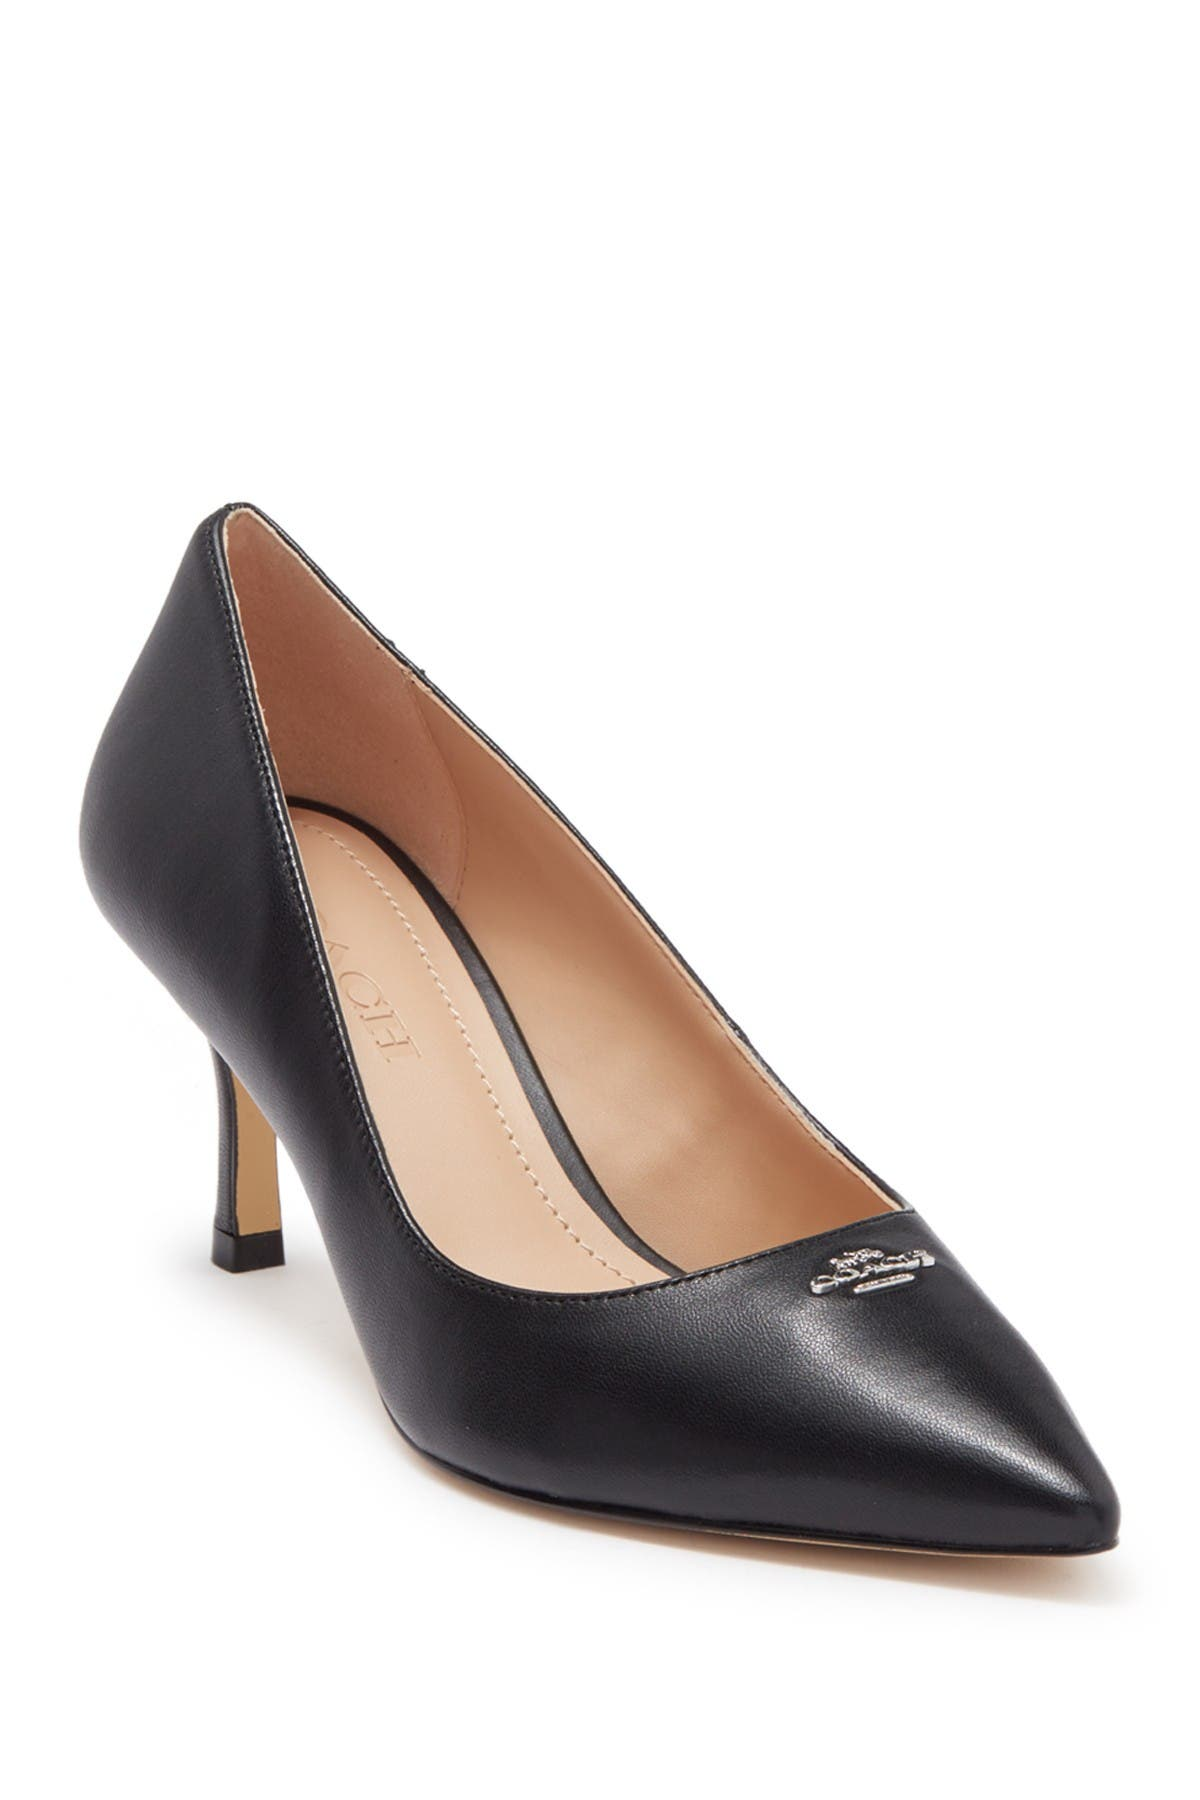 Image of Coach Orla Leather Pump